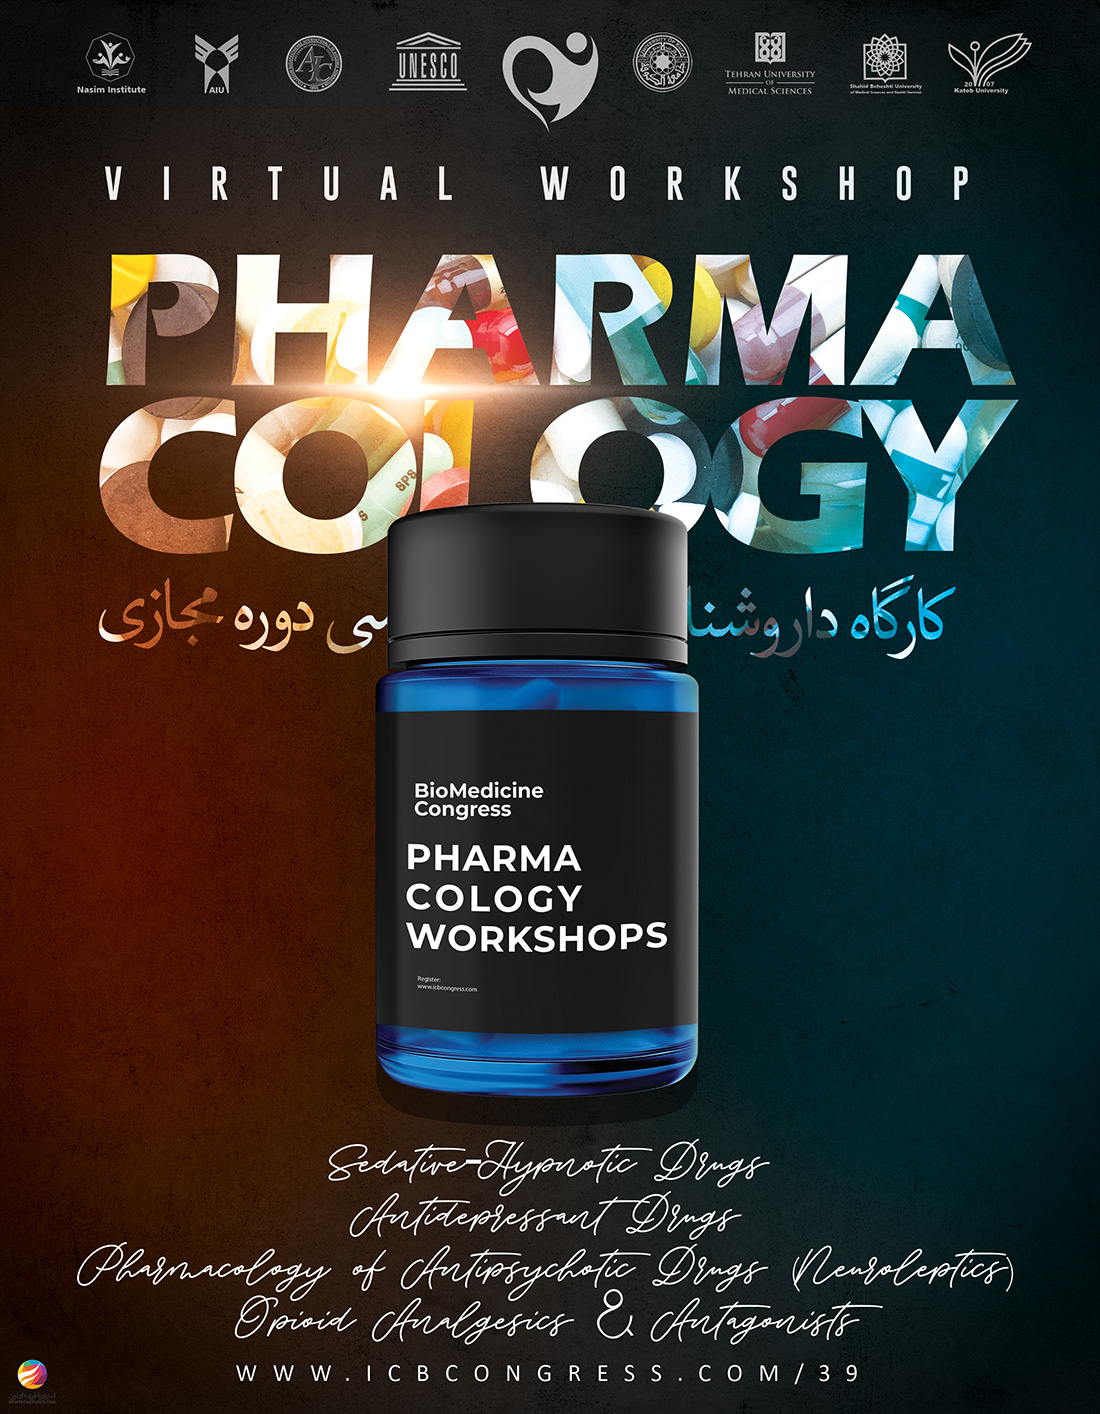 Pharmacology Workshops